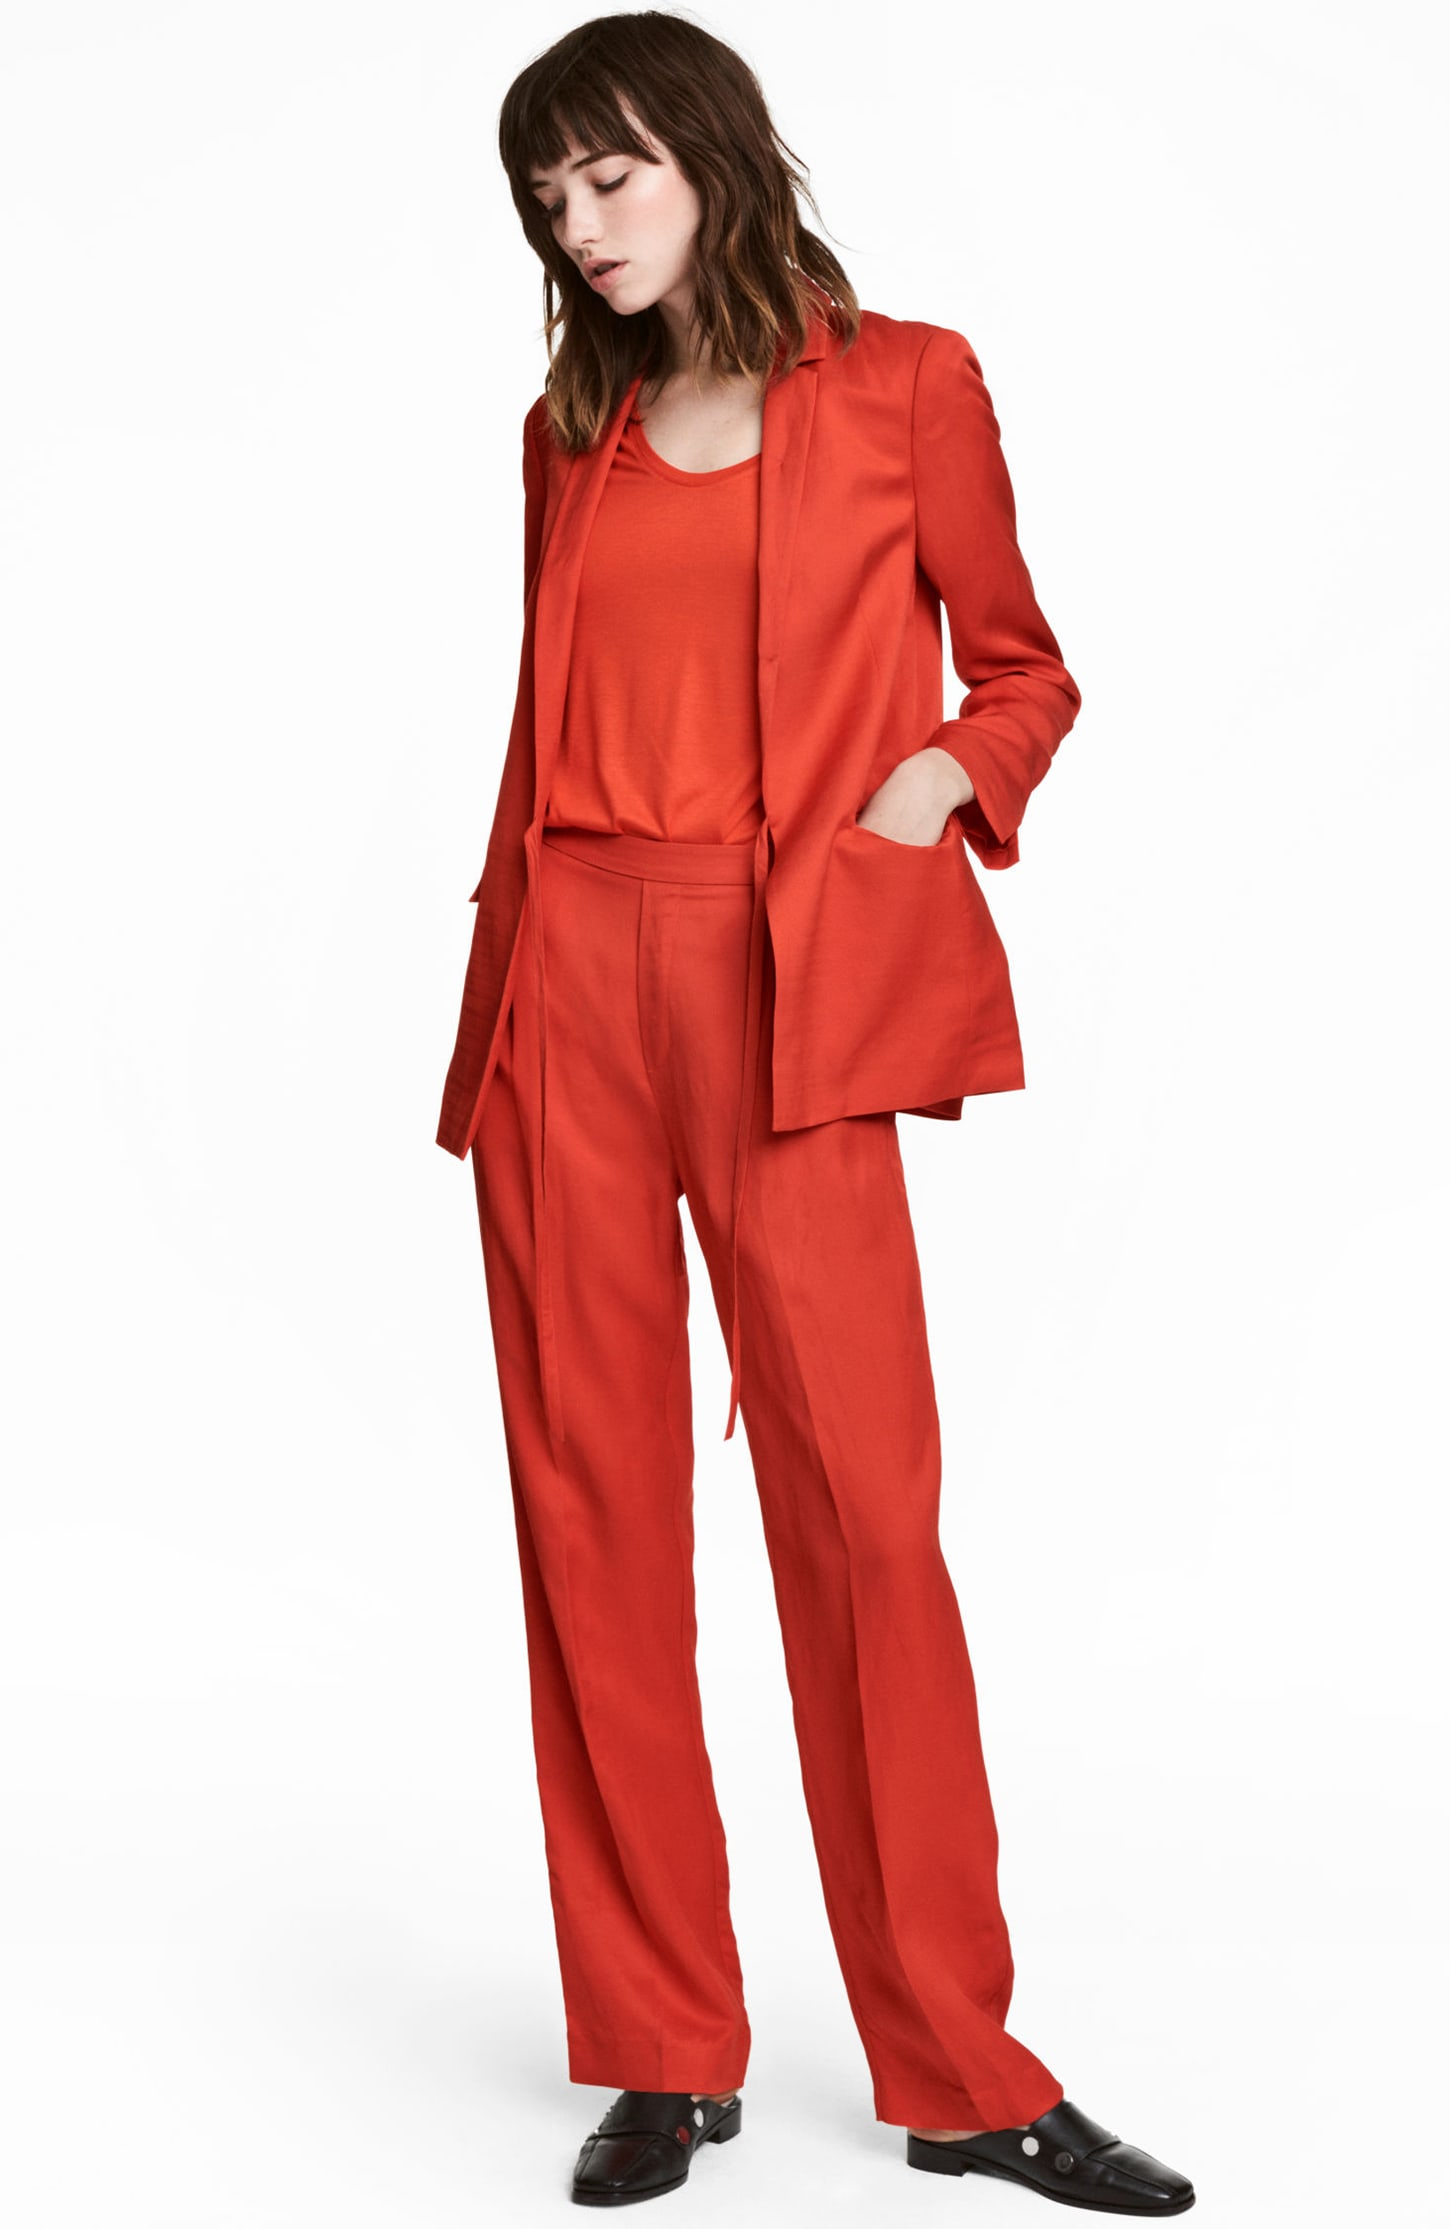 H&M jacket and trousers